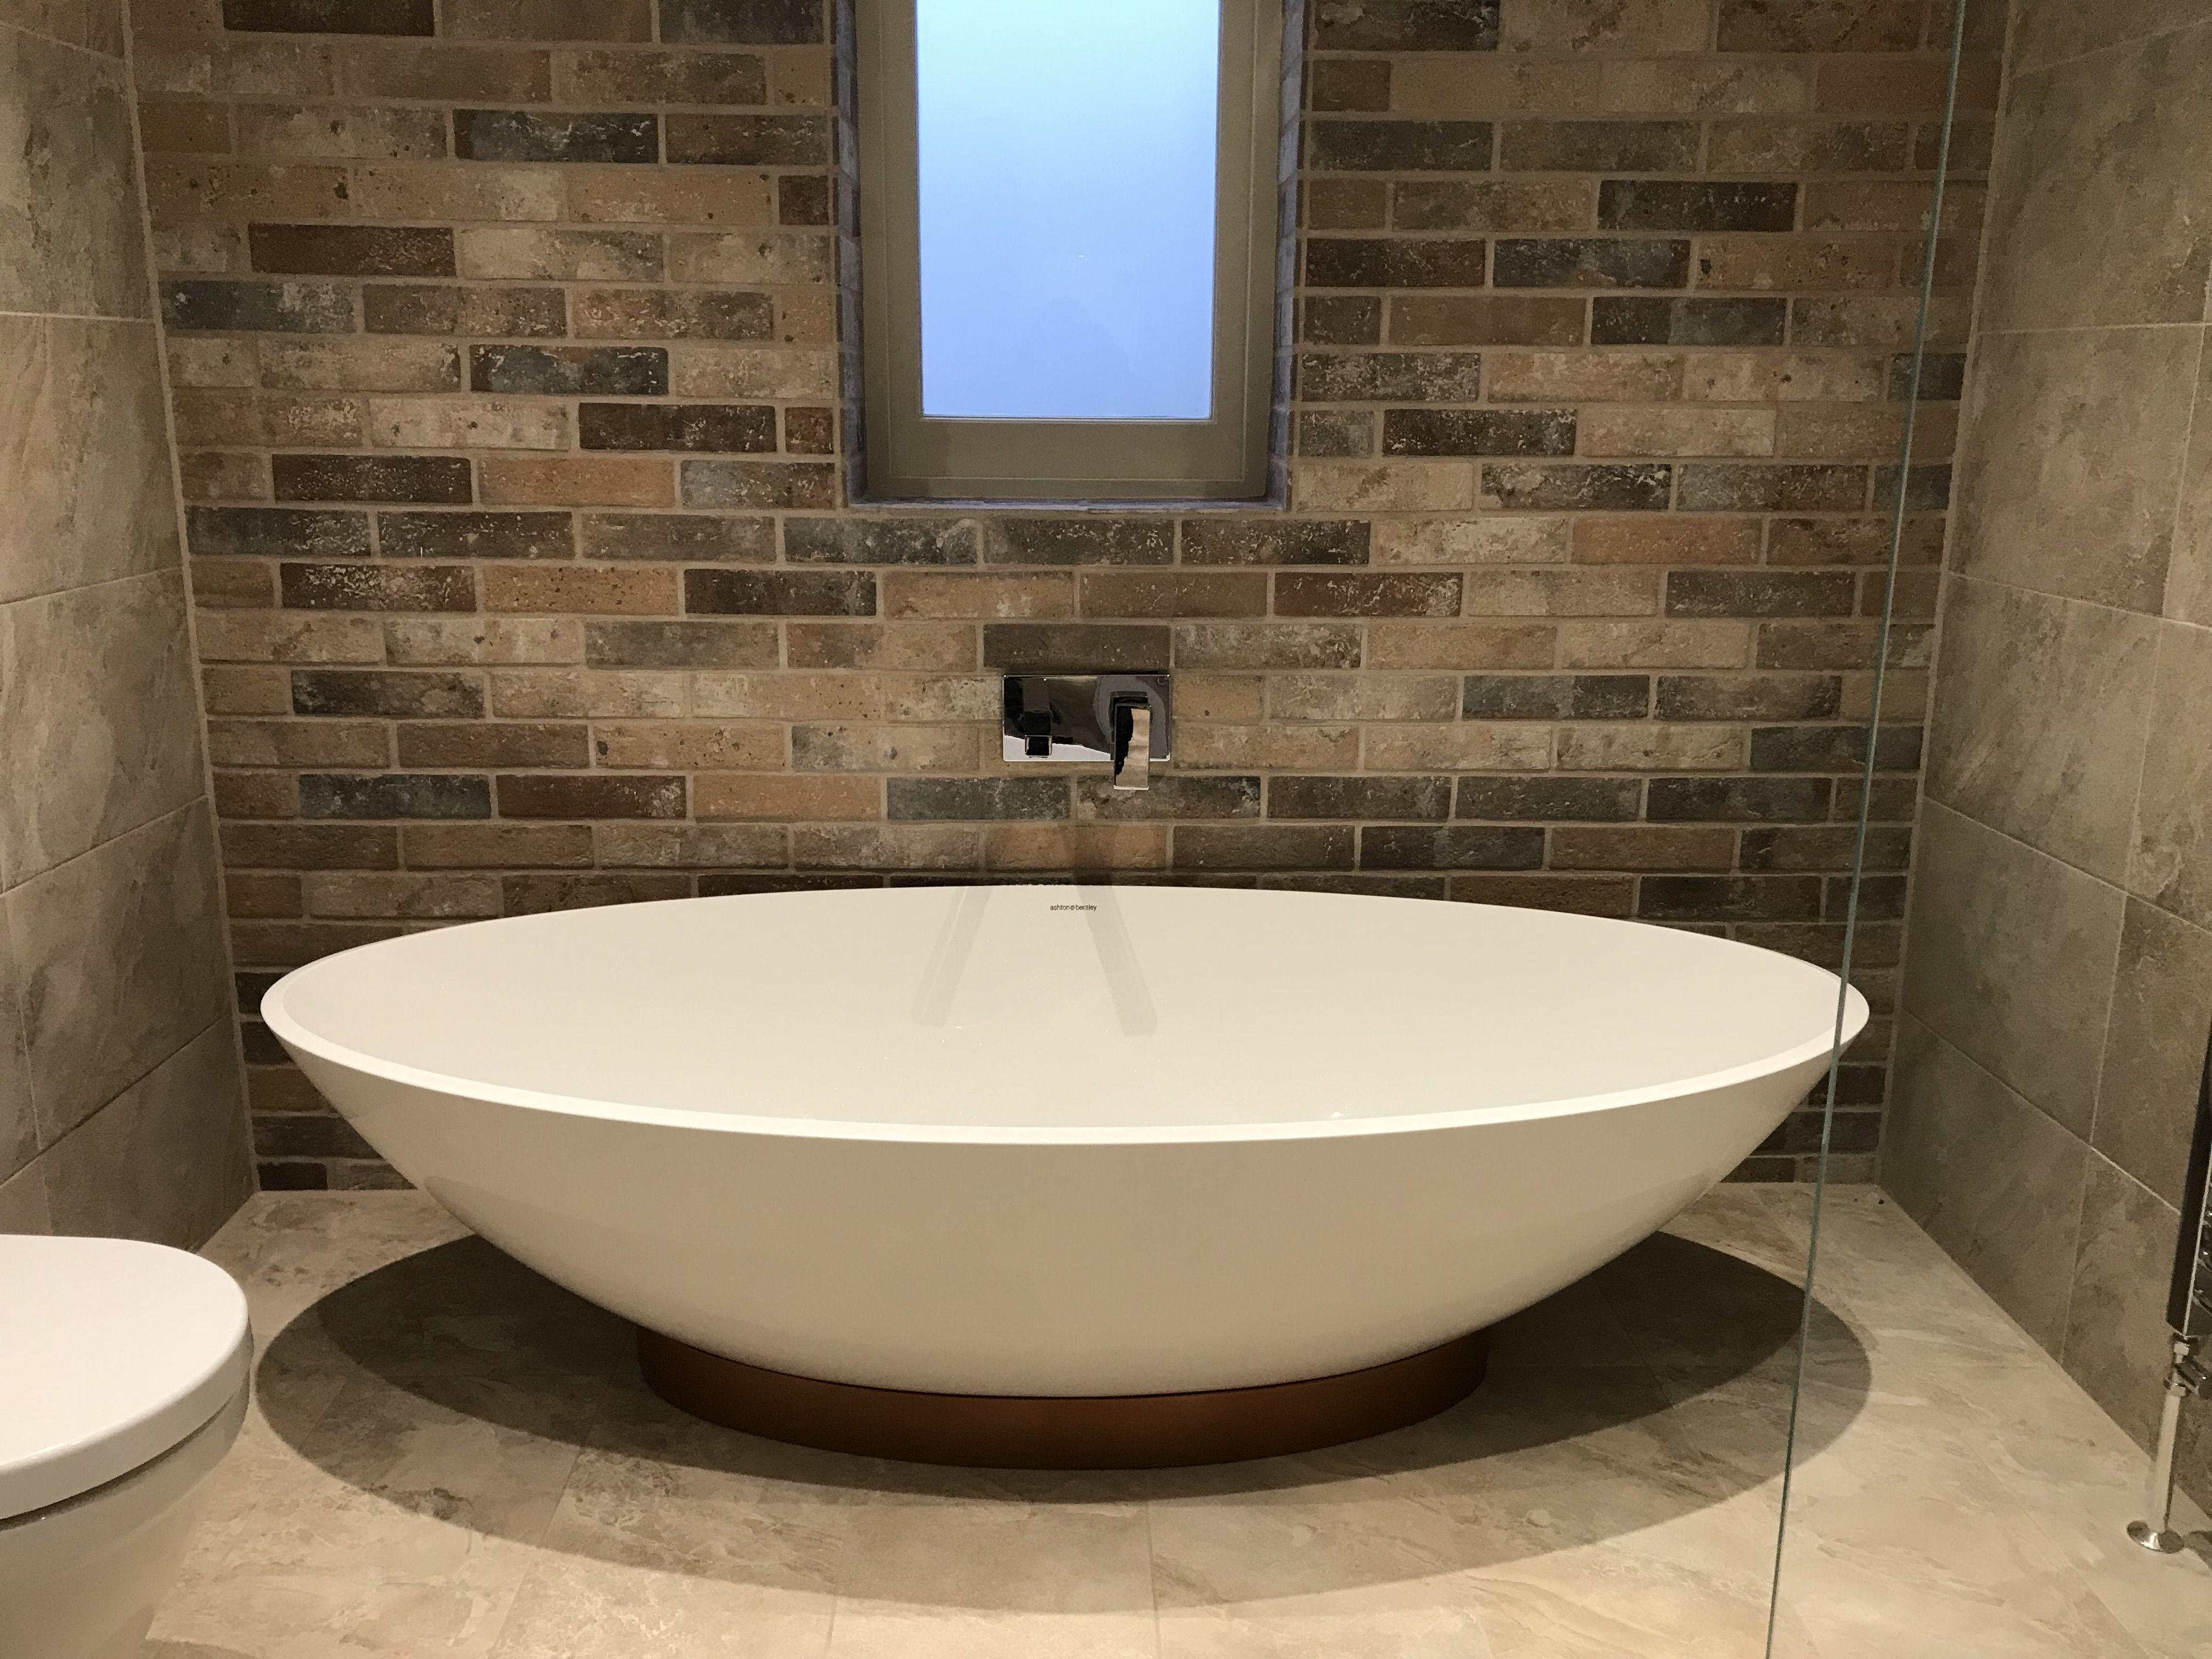 Top Marks To Our Bathroom Fitters For This One 👍 Great Entrancing Bathroom Designers And Fitters Decorating Inspiration